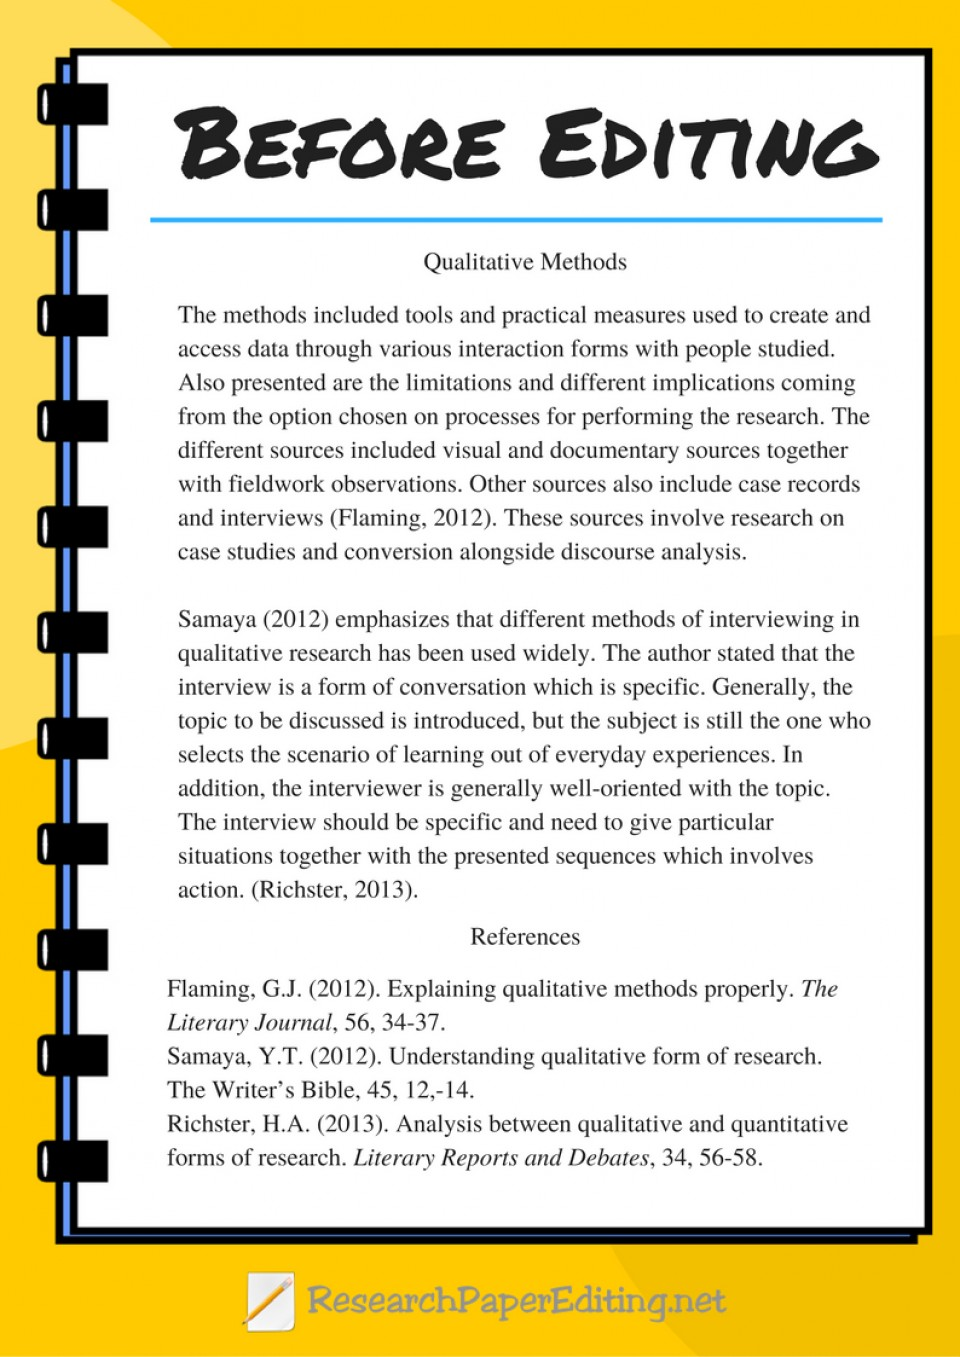 005 Research Paper 8atplxz Best Editing Writing Services Academic Jobs Free Software 960